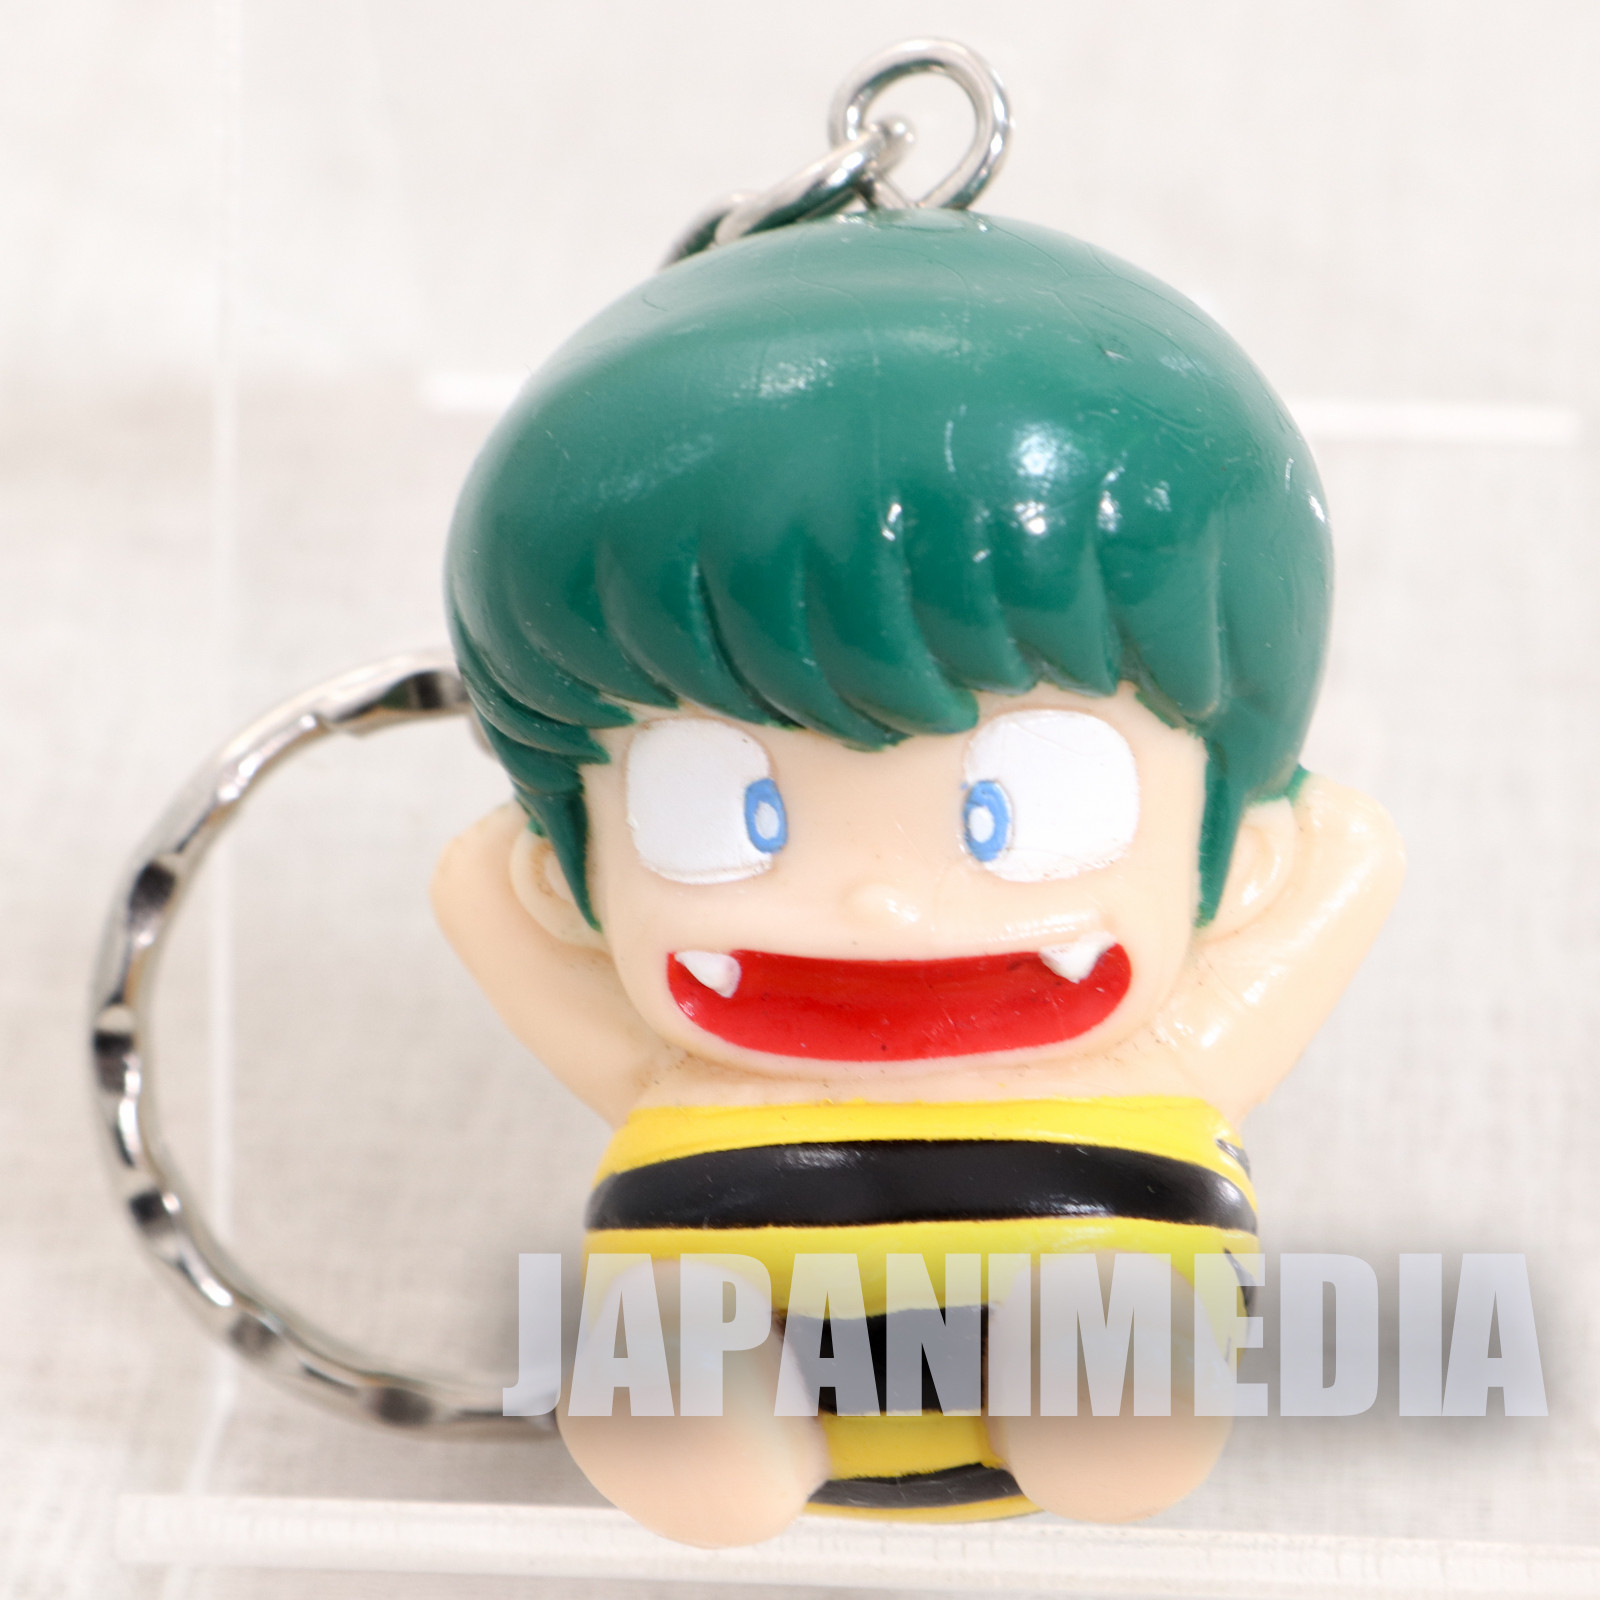 Urusei Yatsura TEN Figure Key Chain JAPAN ANIME MANGA RUMIKO TAKAHASHI